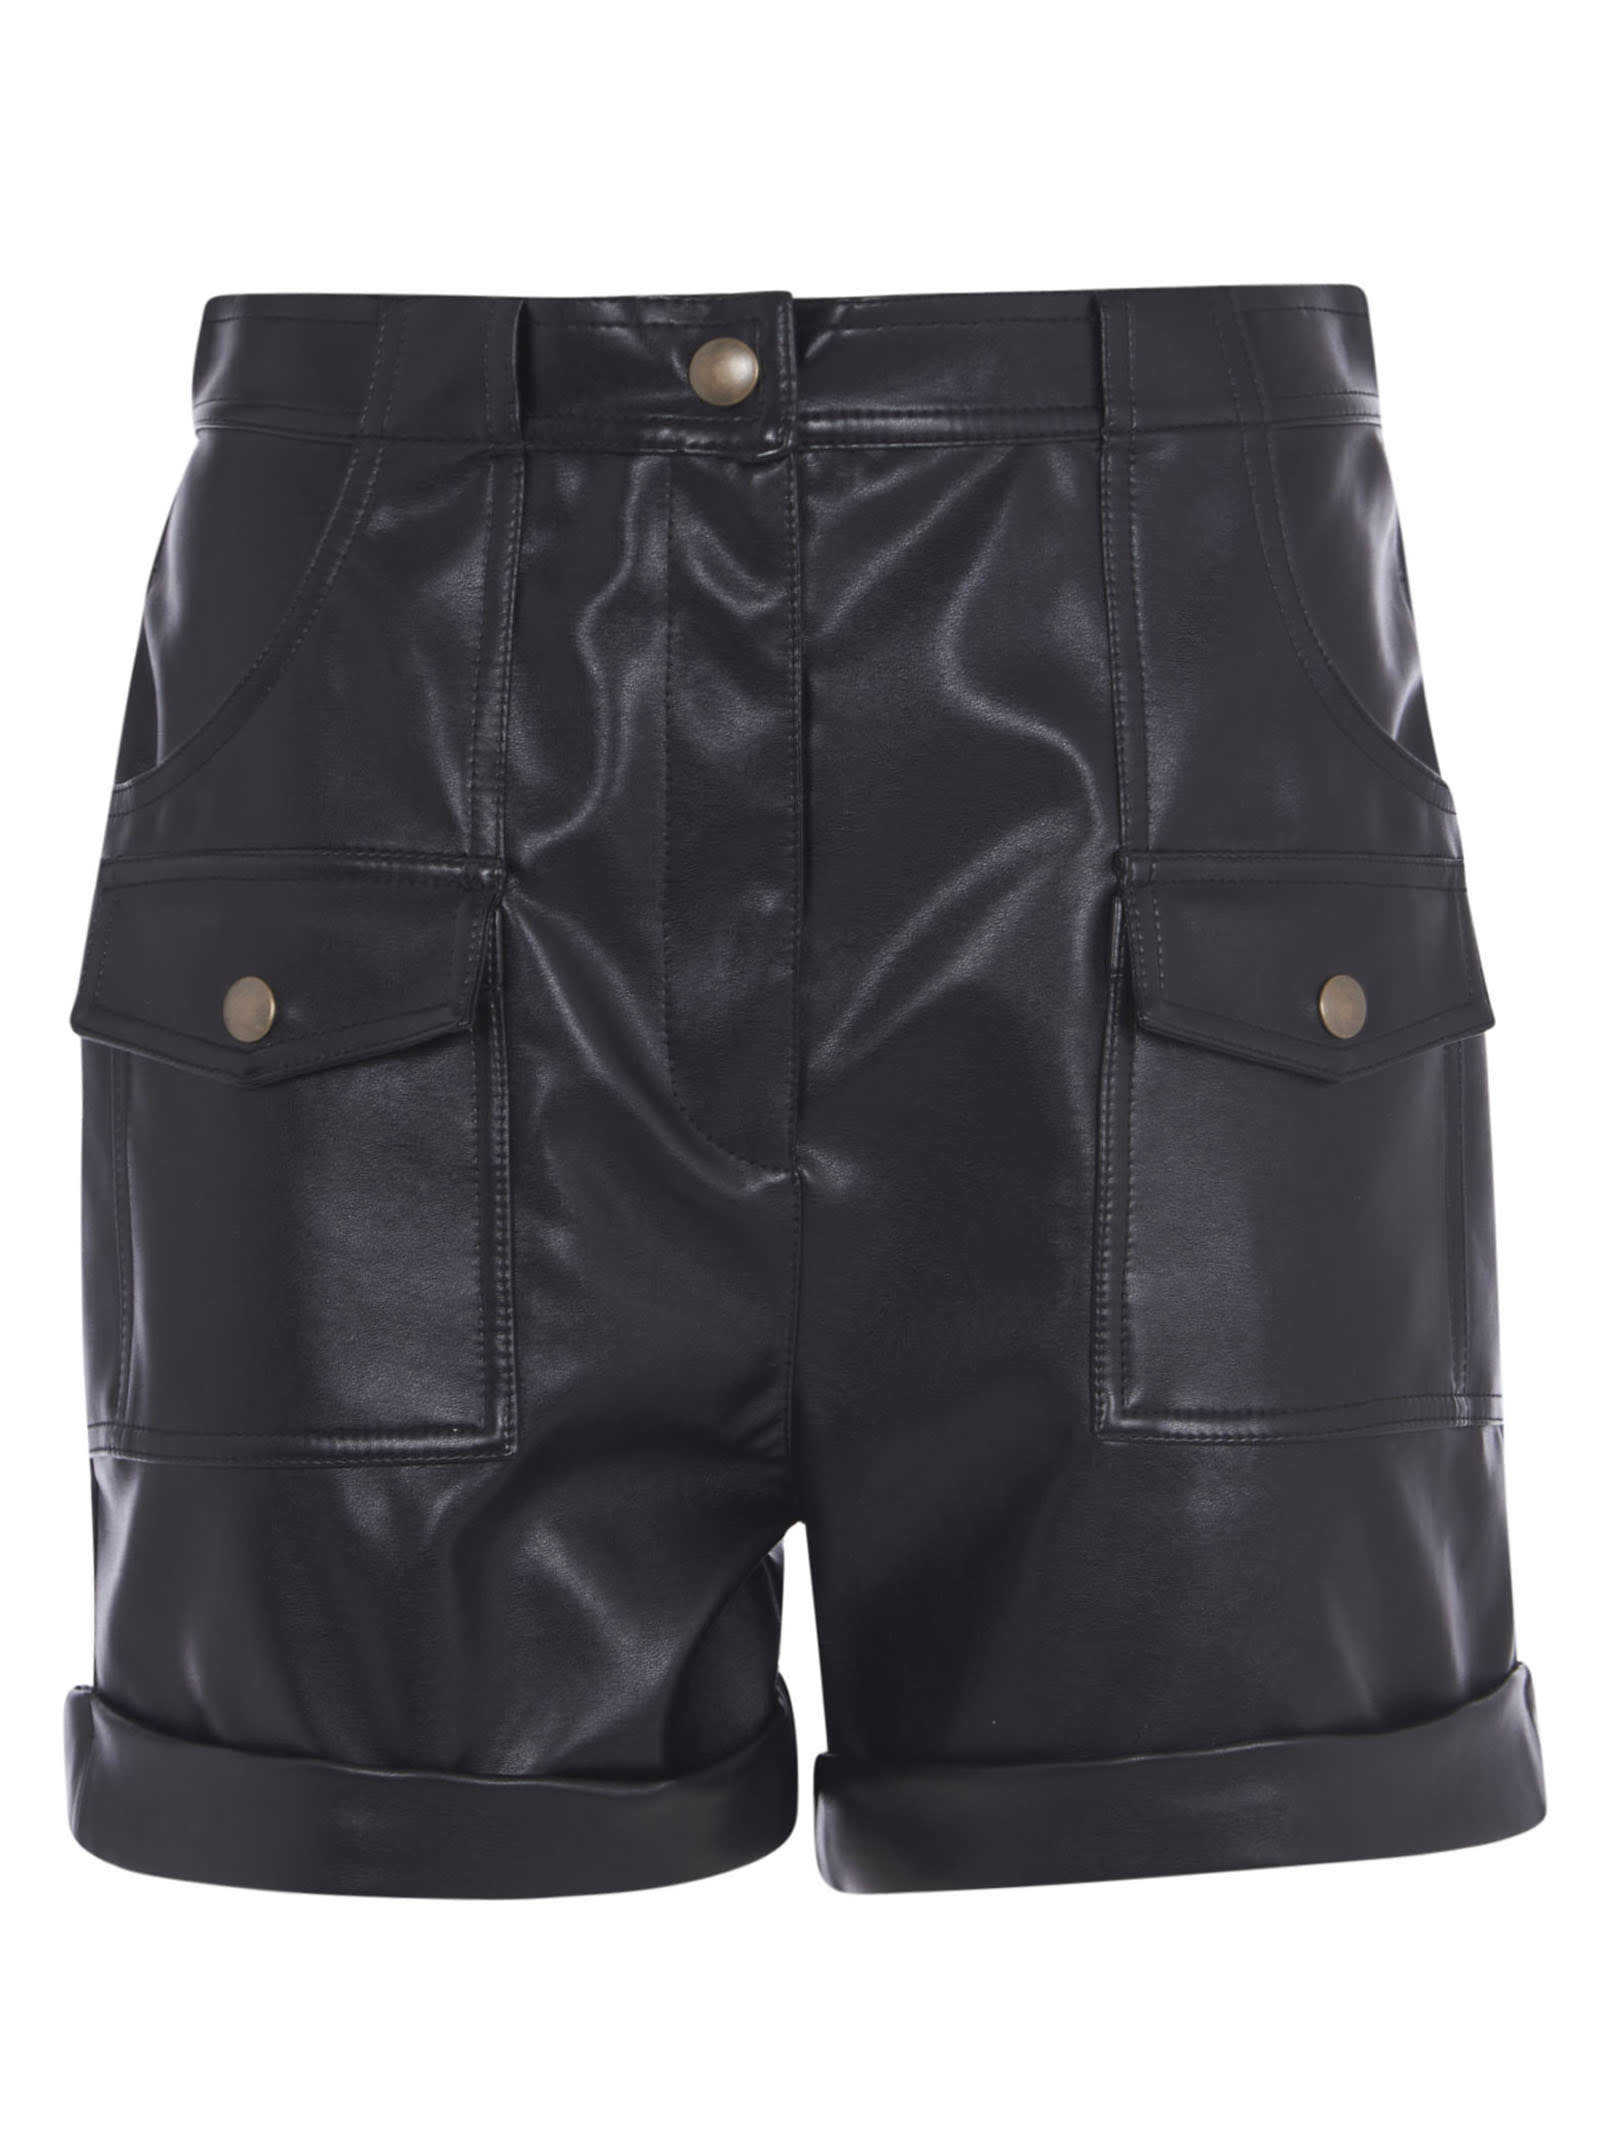 Philosophy Di Lorenzo Serafini FRONT BUTTONED POCKET SHORTS